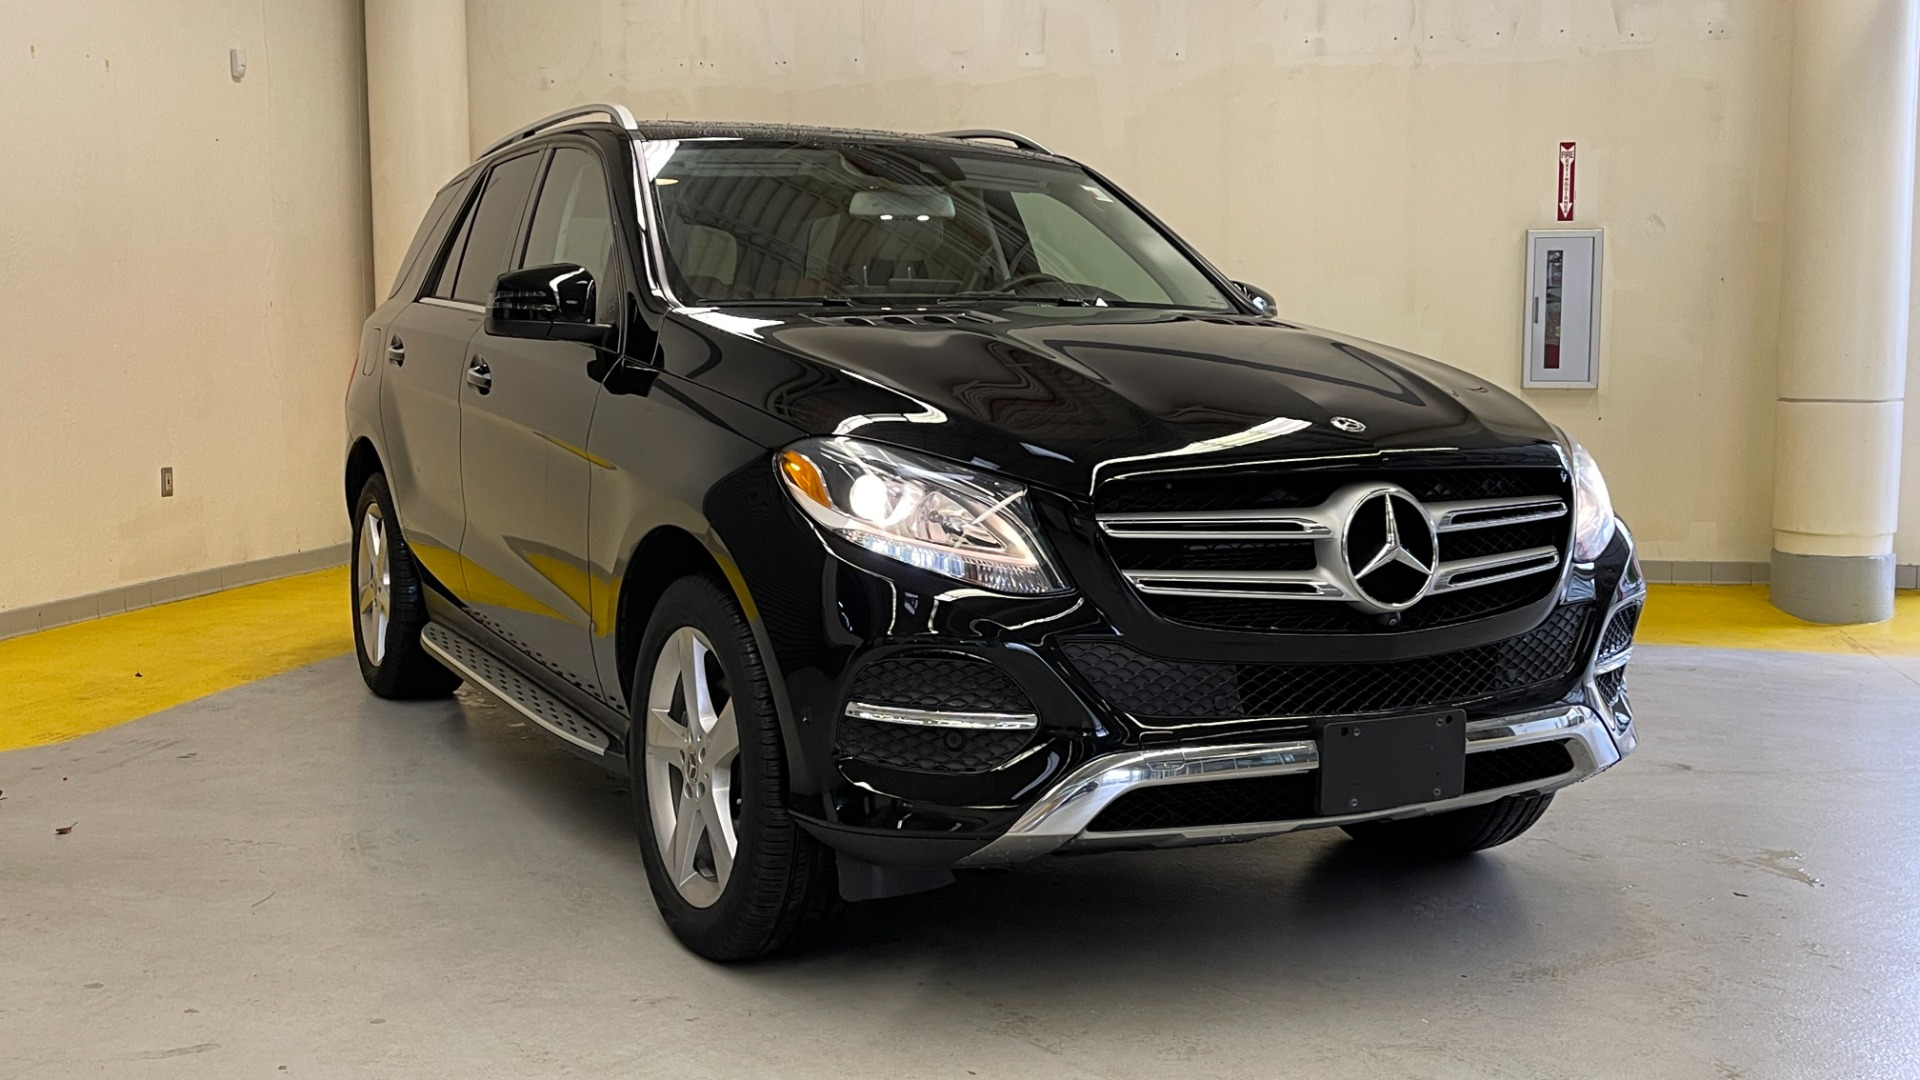 Used 2018 Mercedes-Benz GLE 350 4MATIC PREMIUM / NAV / PARK PILOT / BSA / H/K SND / SURROUND VIEW for sale $40,995 at Formula Imports in Charlotte NC 28227 2